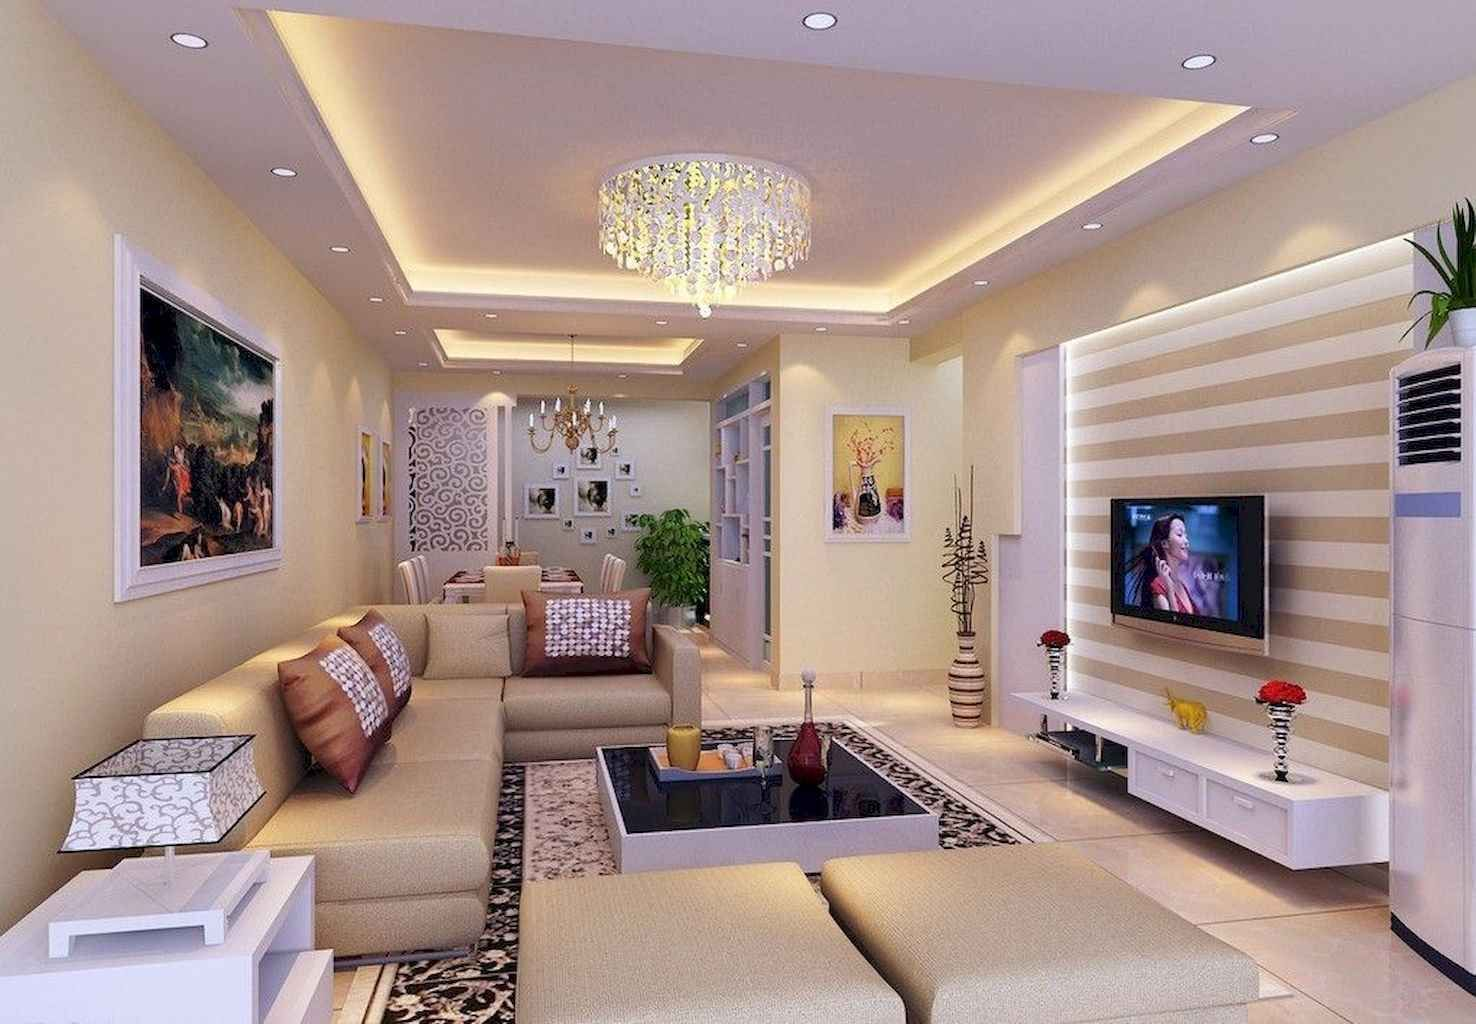 02 Cozy Small Living Room Decor Ideas On A Budget Structhome Com Ceiling Design Living Room Living Room Ceiling Home Ceiling